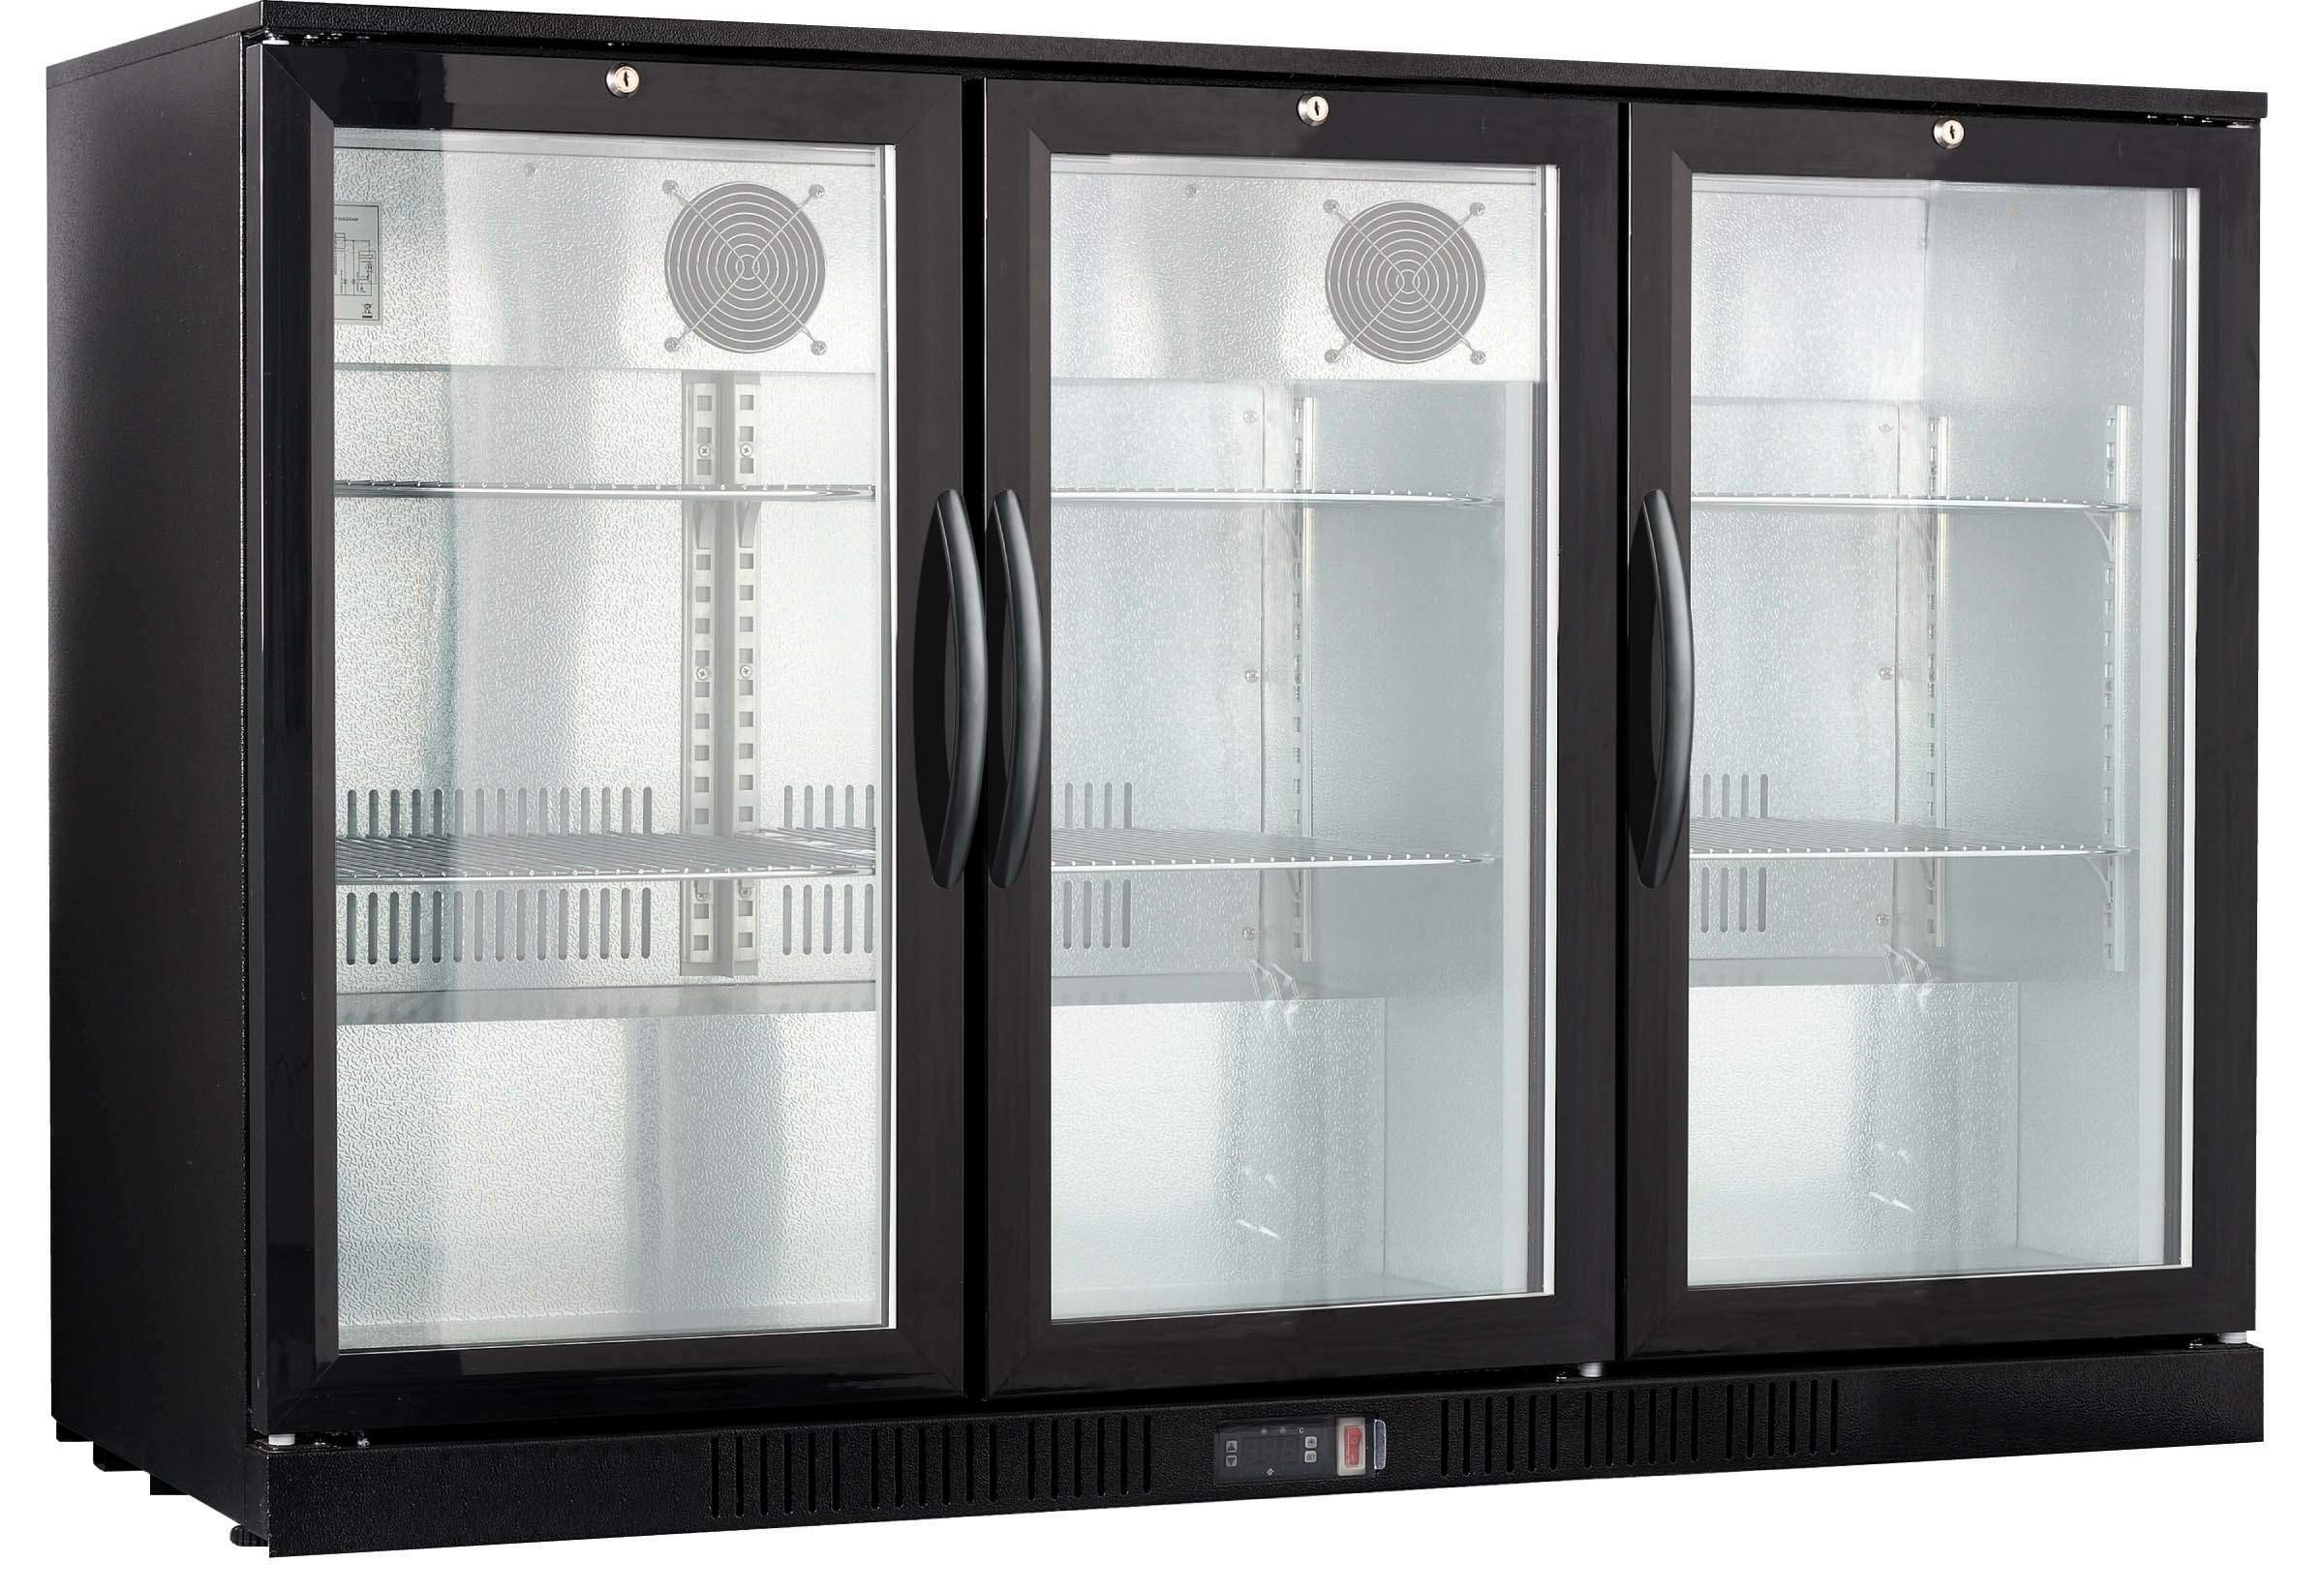 Frigoriferi Side By Side Prezzi : Frigo a location de frigos vitrine en ml